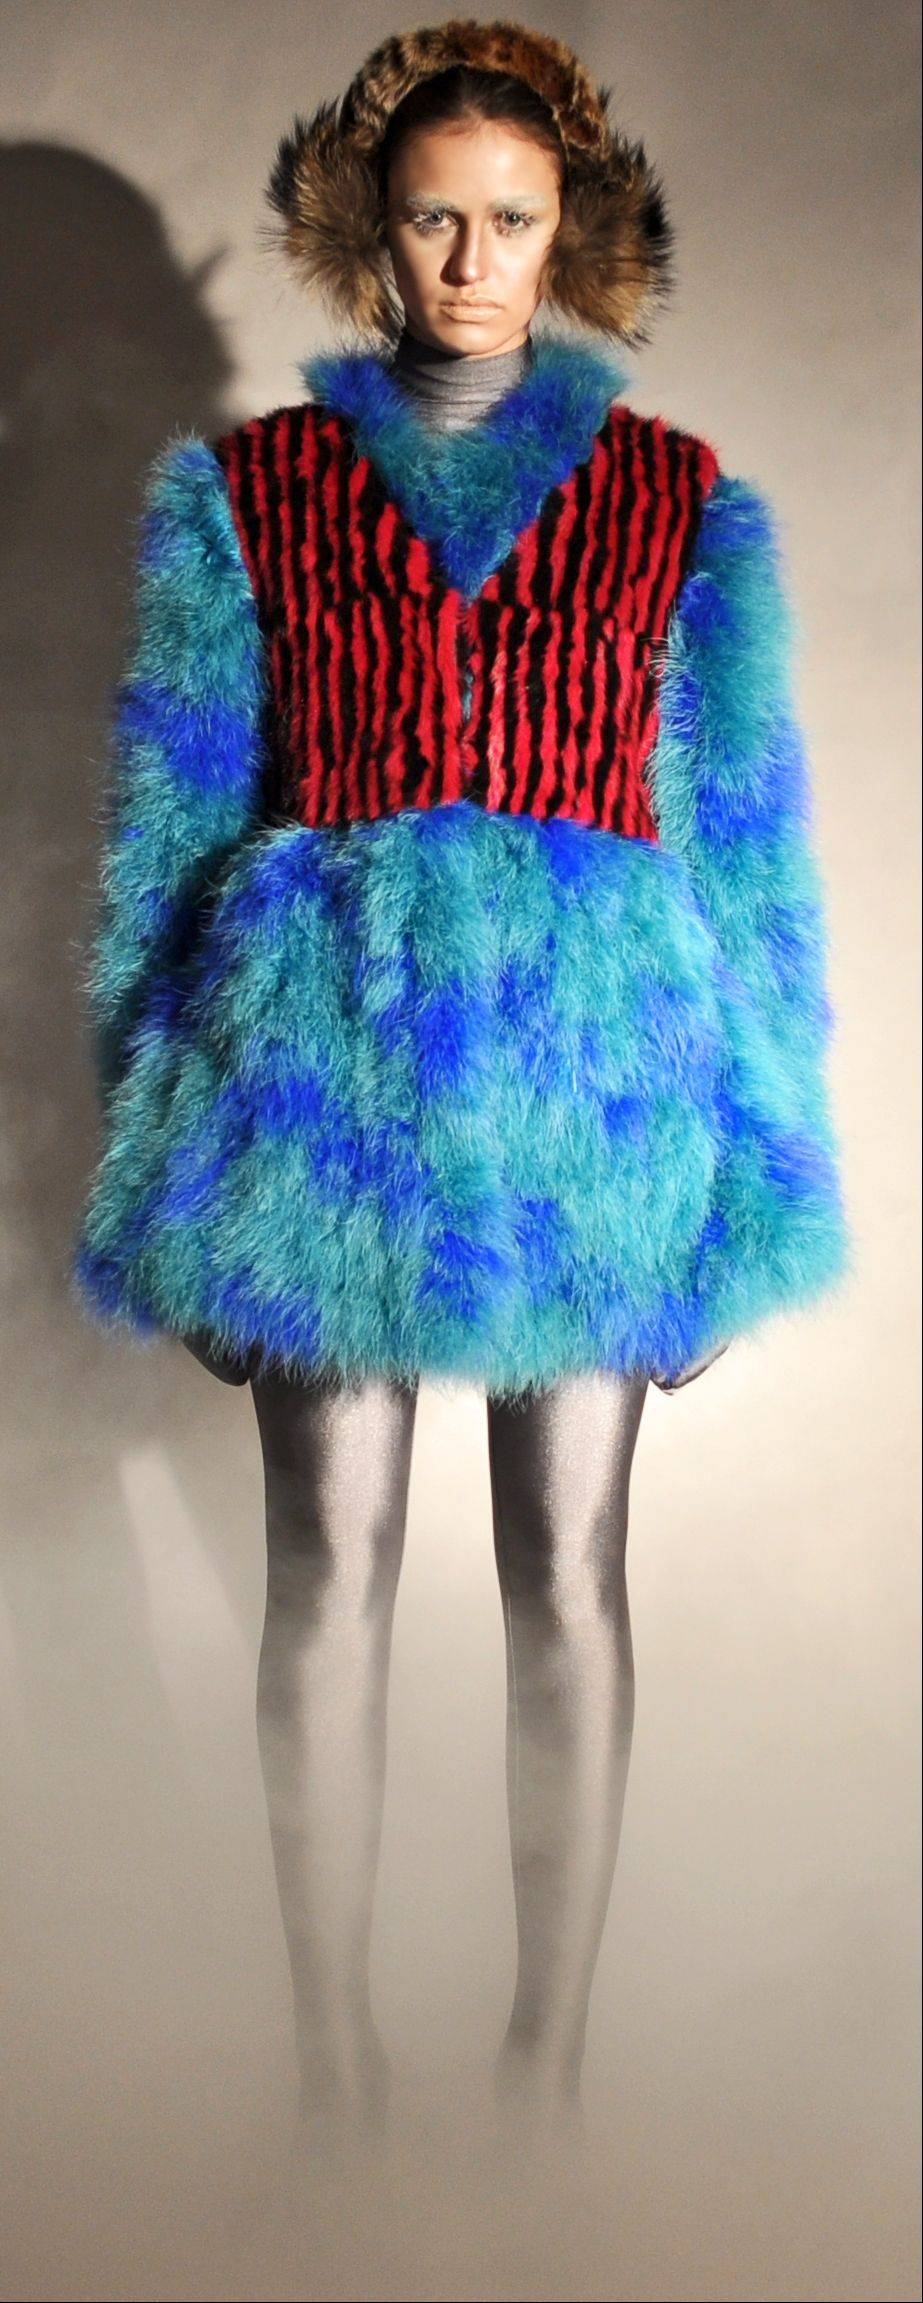 Leopard printed rabbit earmuffs with raccoon puffs and a cropped mink striped vest, marabou spotted coat, part of Adrienne Landau's fall 2011 collection.